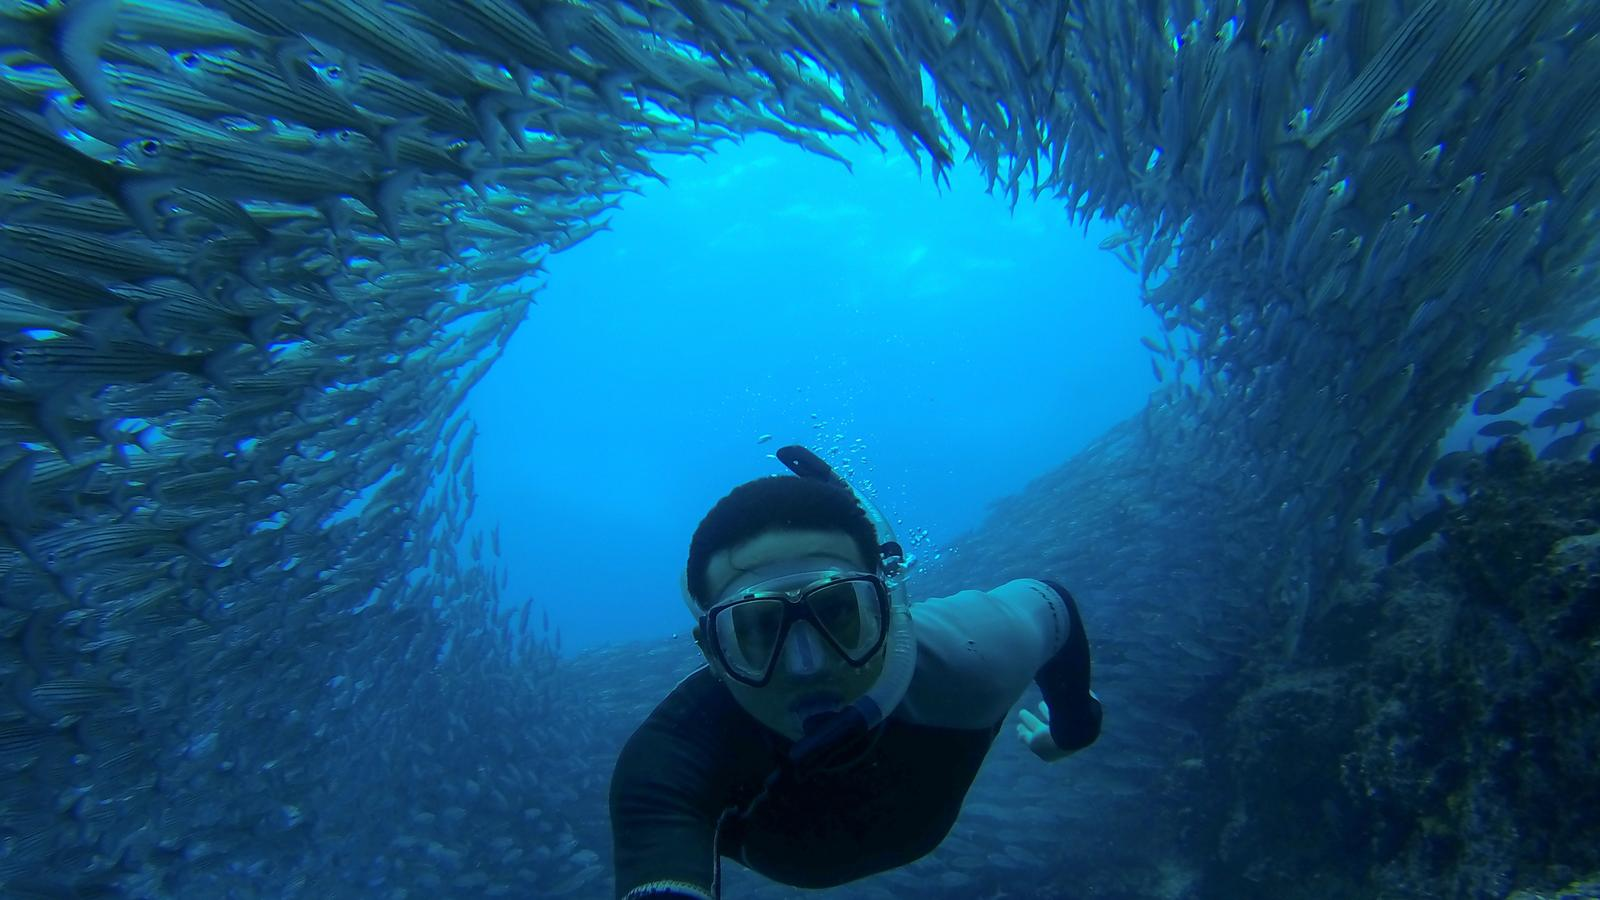 CEO takes the best underwater selfie in the Galapagos